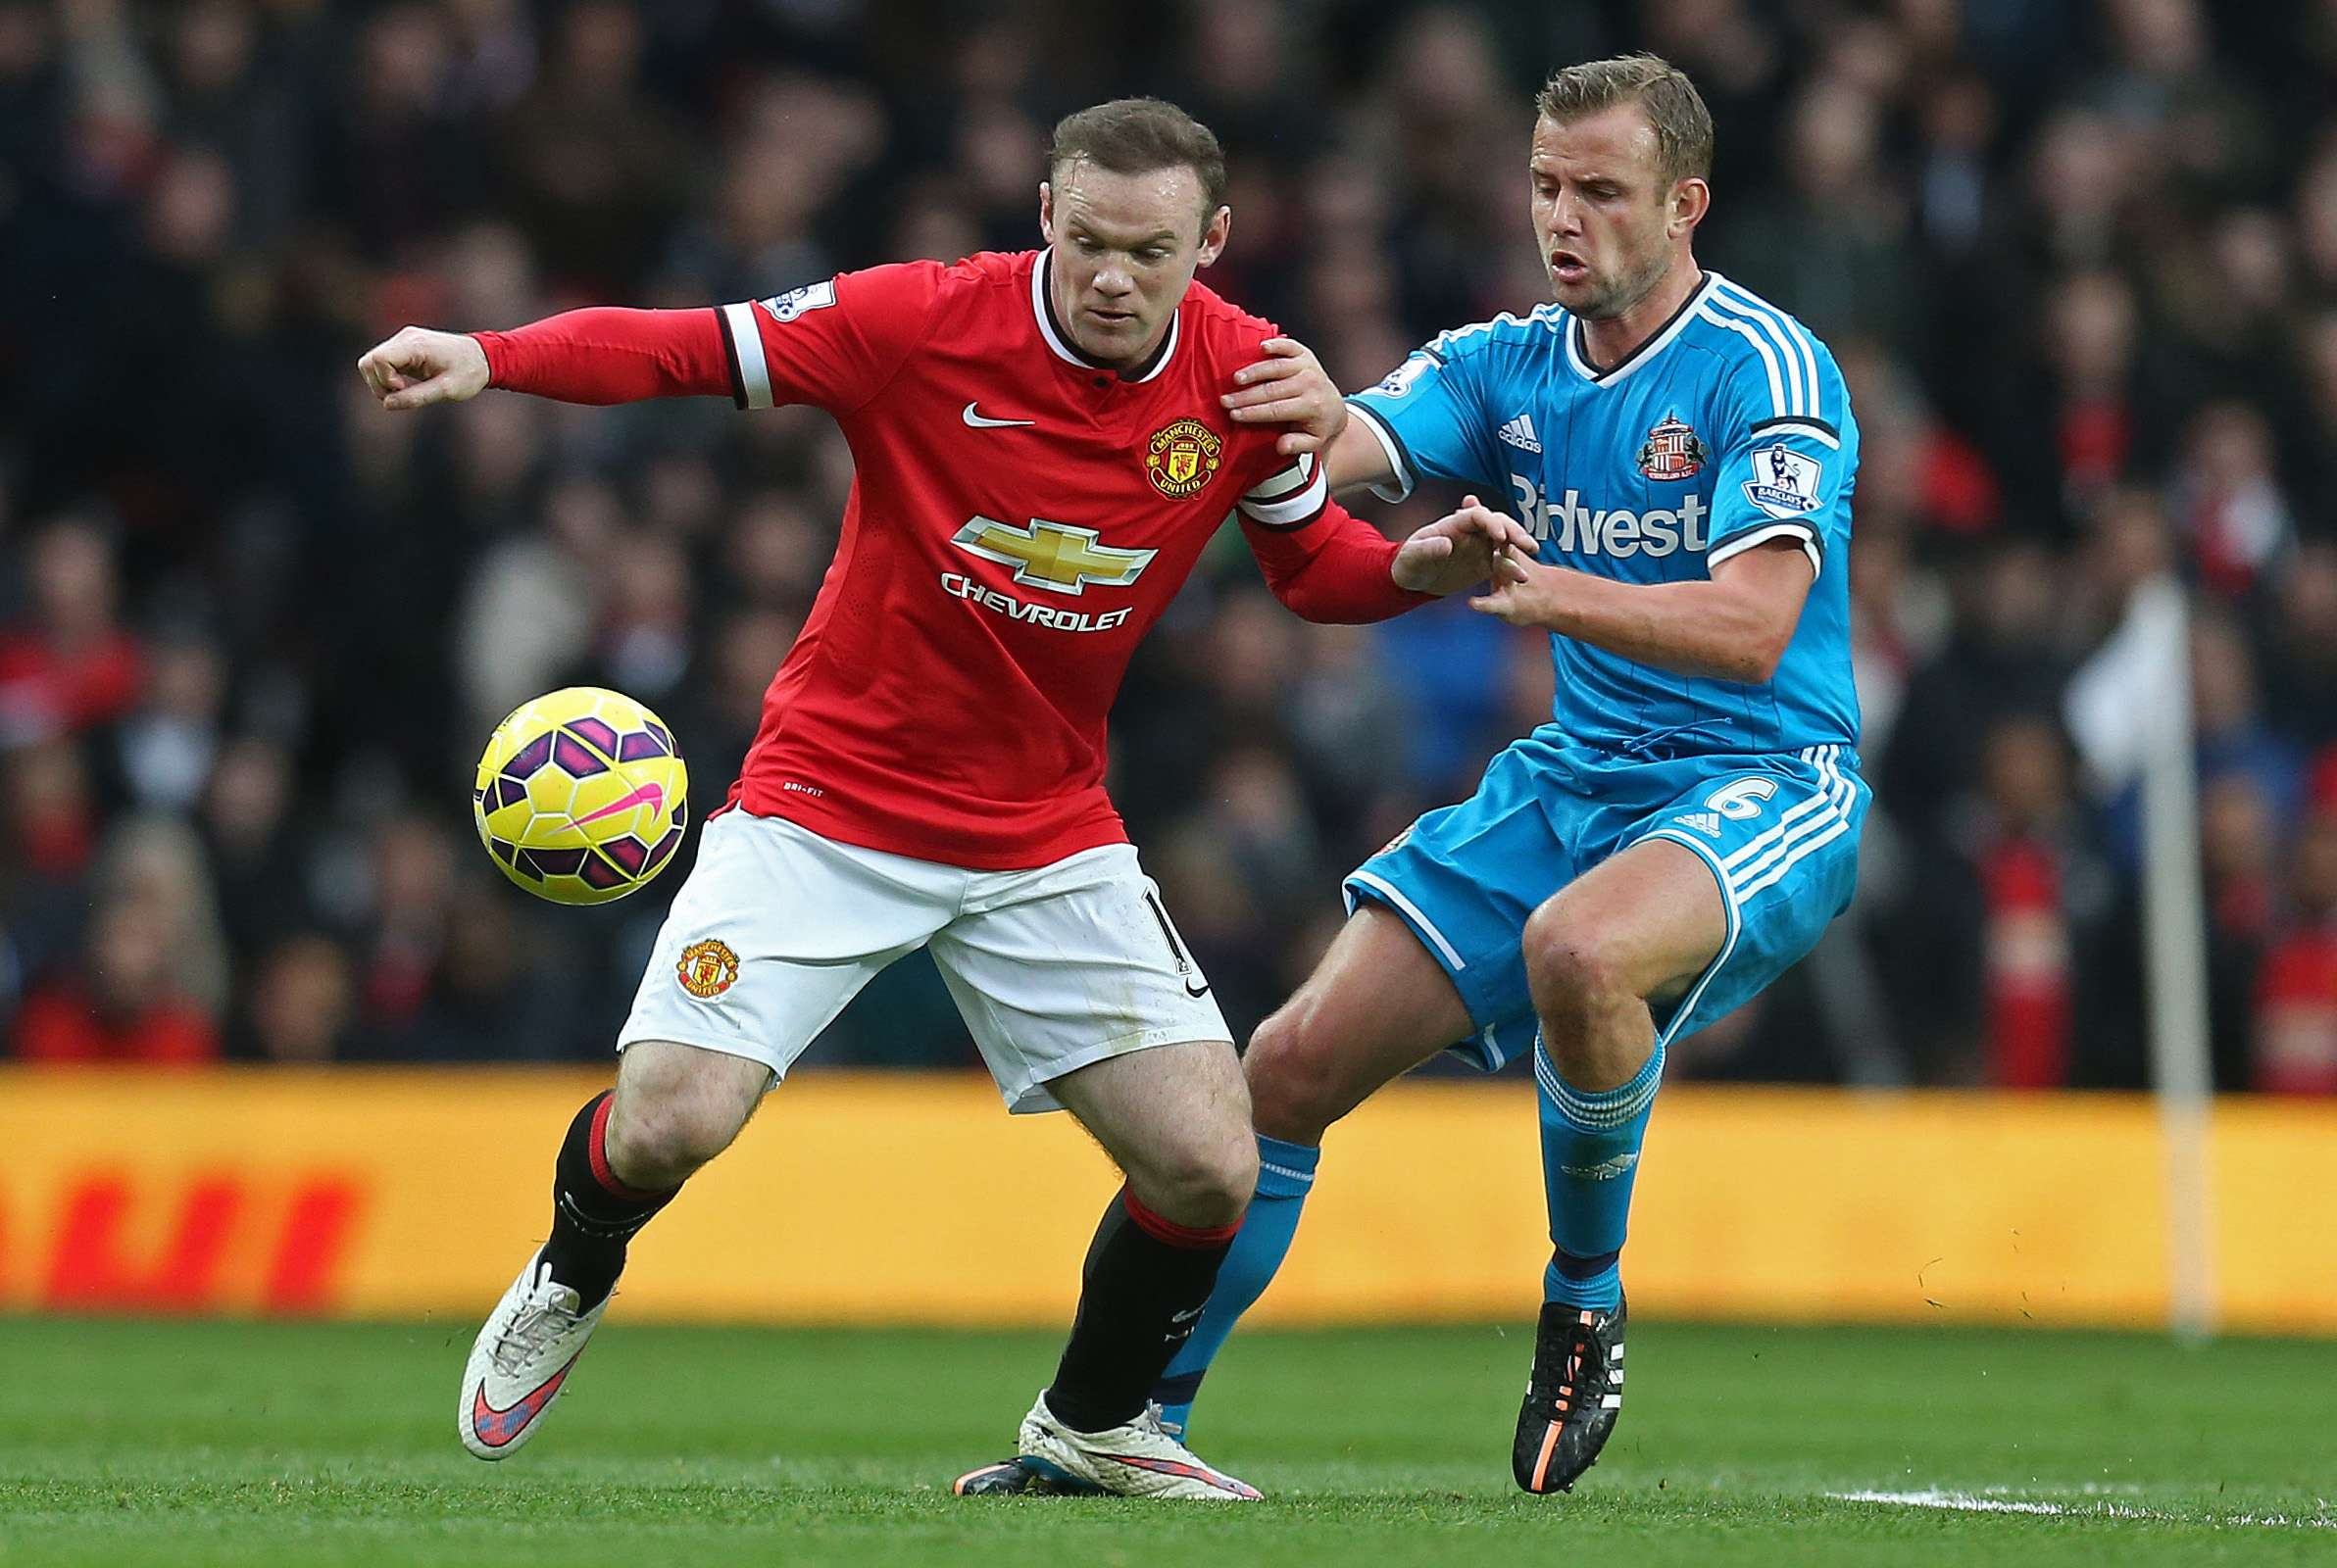 "Football - Manchester United v Sunderland - Barclays Premier League - Old Trafford - 28/2/15 Manchester United's Wayne Rooney in action with Sunderland's Lee Cattermole Action Images via Reuters / Carl Recine Livepic EDITORIAL USE ONLY. No use with unauthorized audio, video, data, fixture lists, club/league logos or ""live"" services. Online in-match use limited to 45 images, no video emulation. No use in betting, games or single club/league/player publications. Please contact your account representative for further details. Foto: Carl Recine/REUTERS"